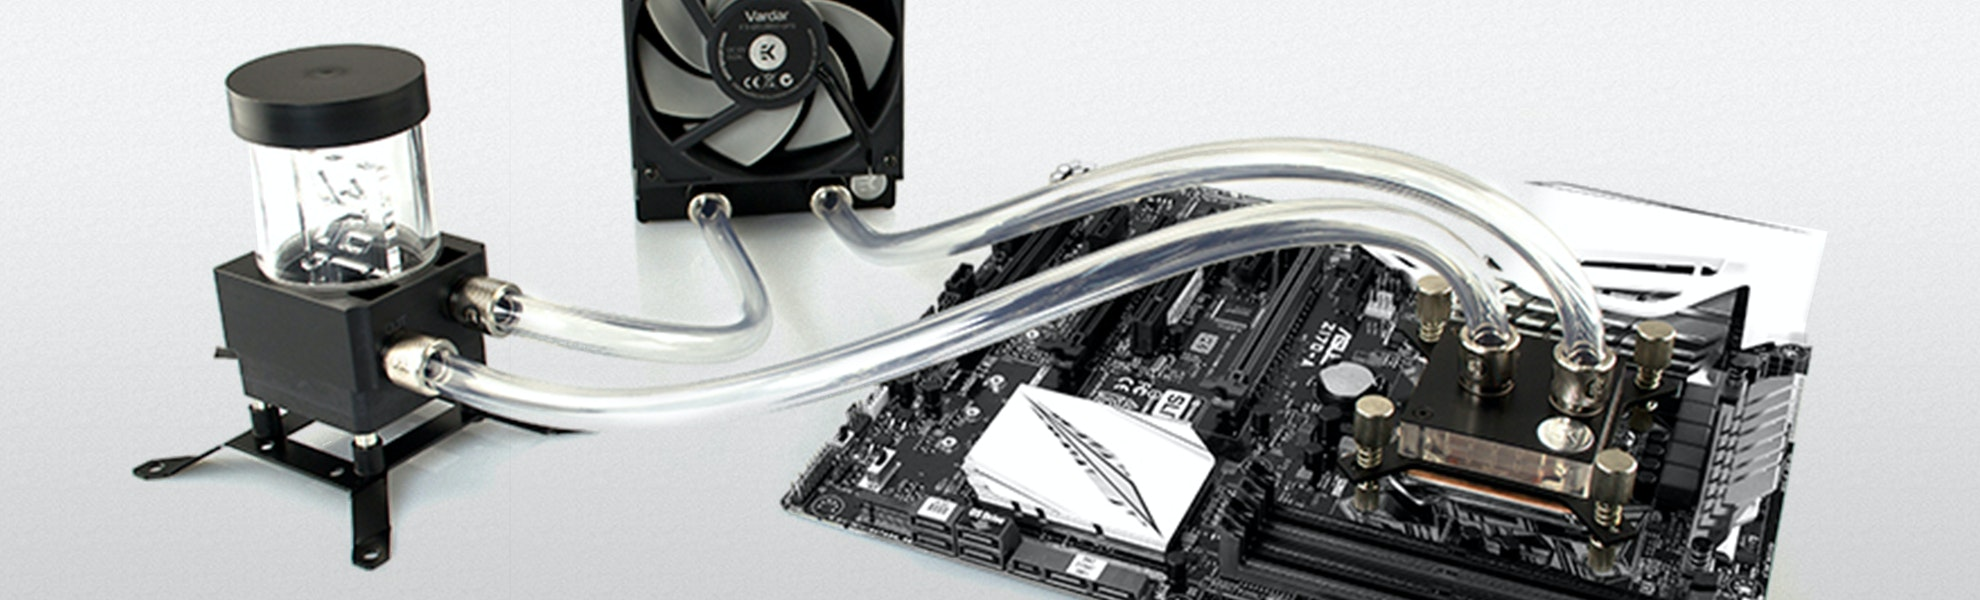 EK PC Water Cooling System Kits